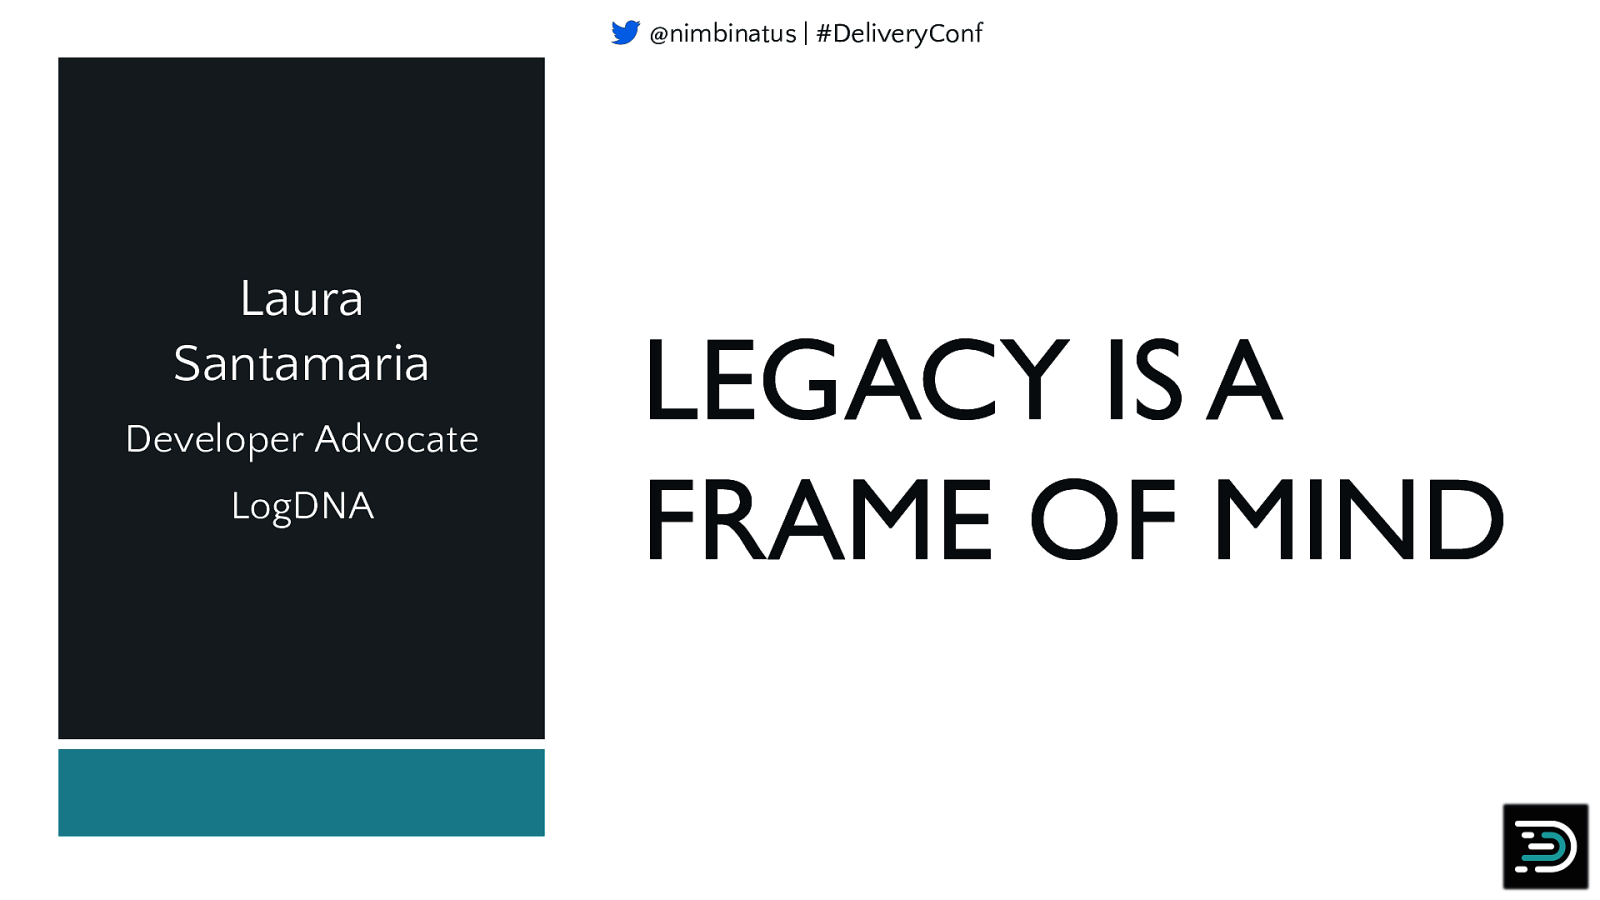 Legacy is a Frame of Mind